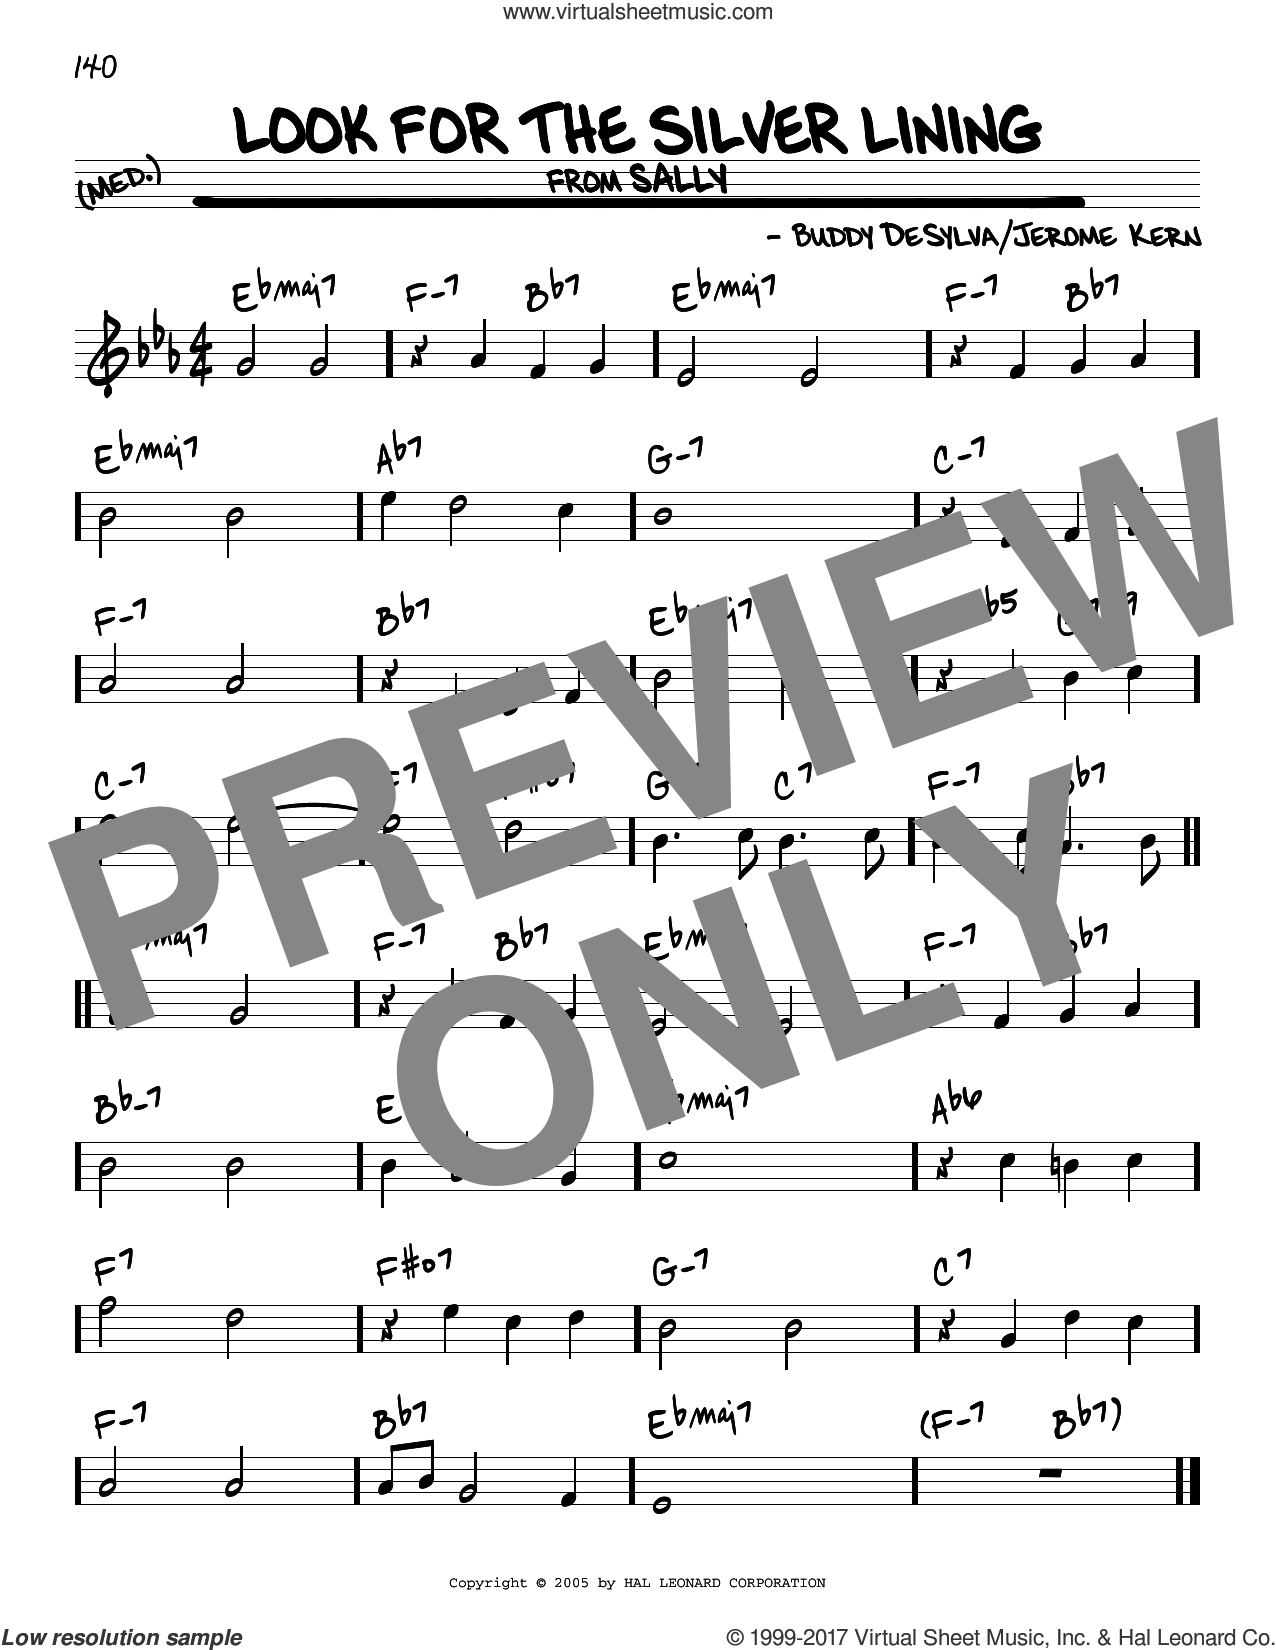 Look For The Silver Lining sheet music for voice and other instruments (real book) by Jerome Kern and Buddy DeSylva, intermediate skill level